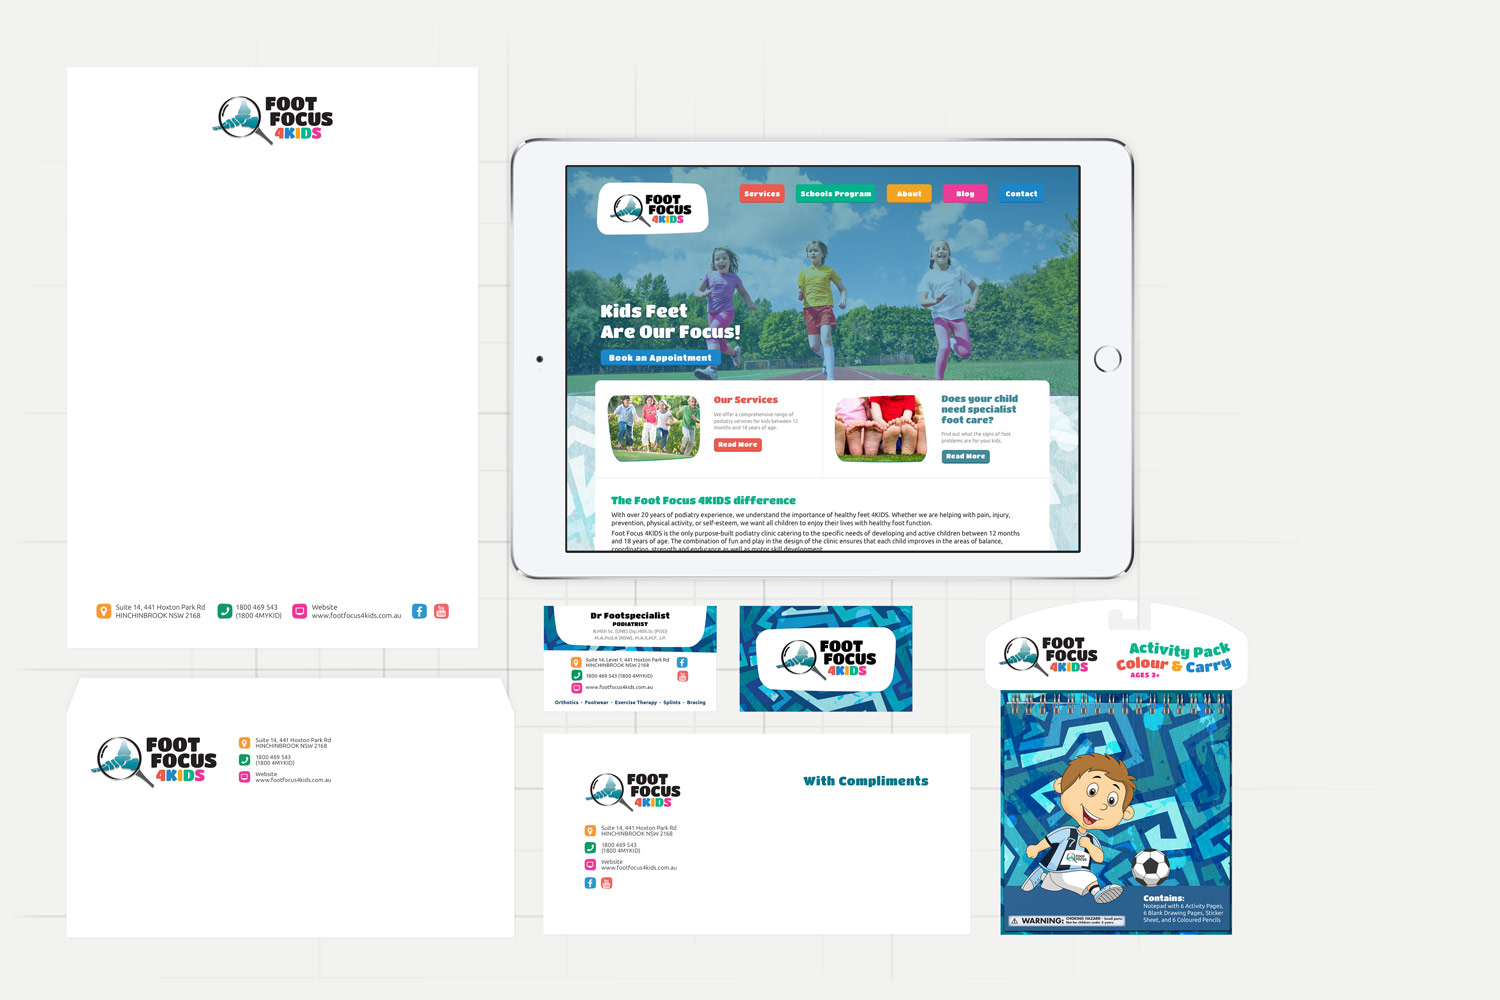 Foot Focus 4KIDS Website and Brand Design by Theysaurus